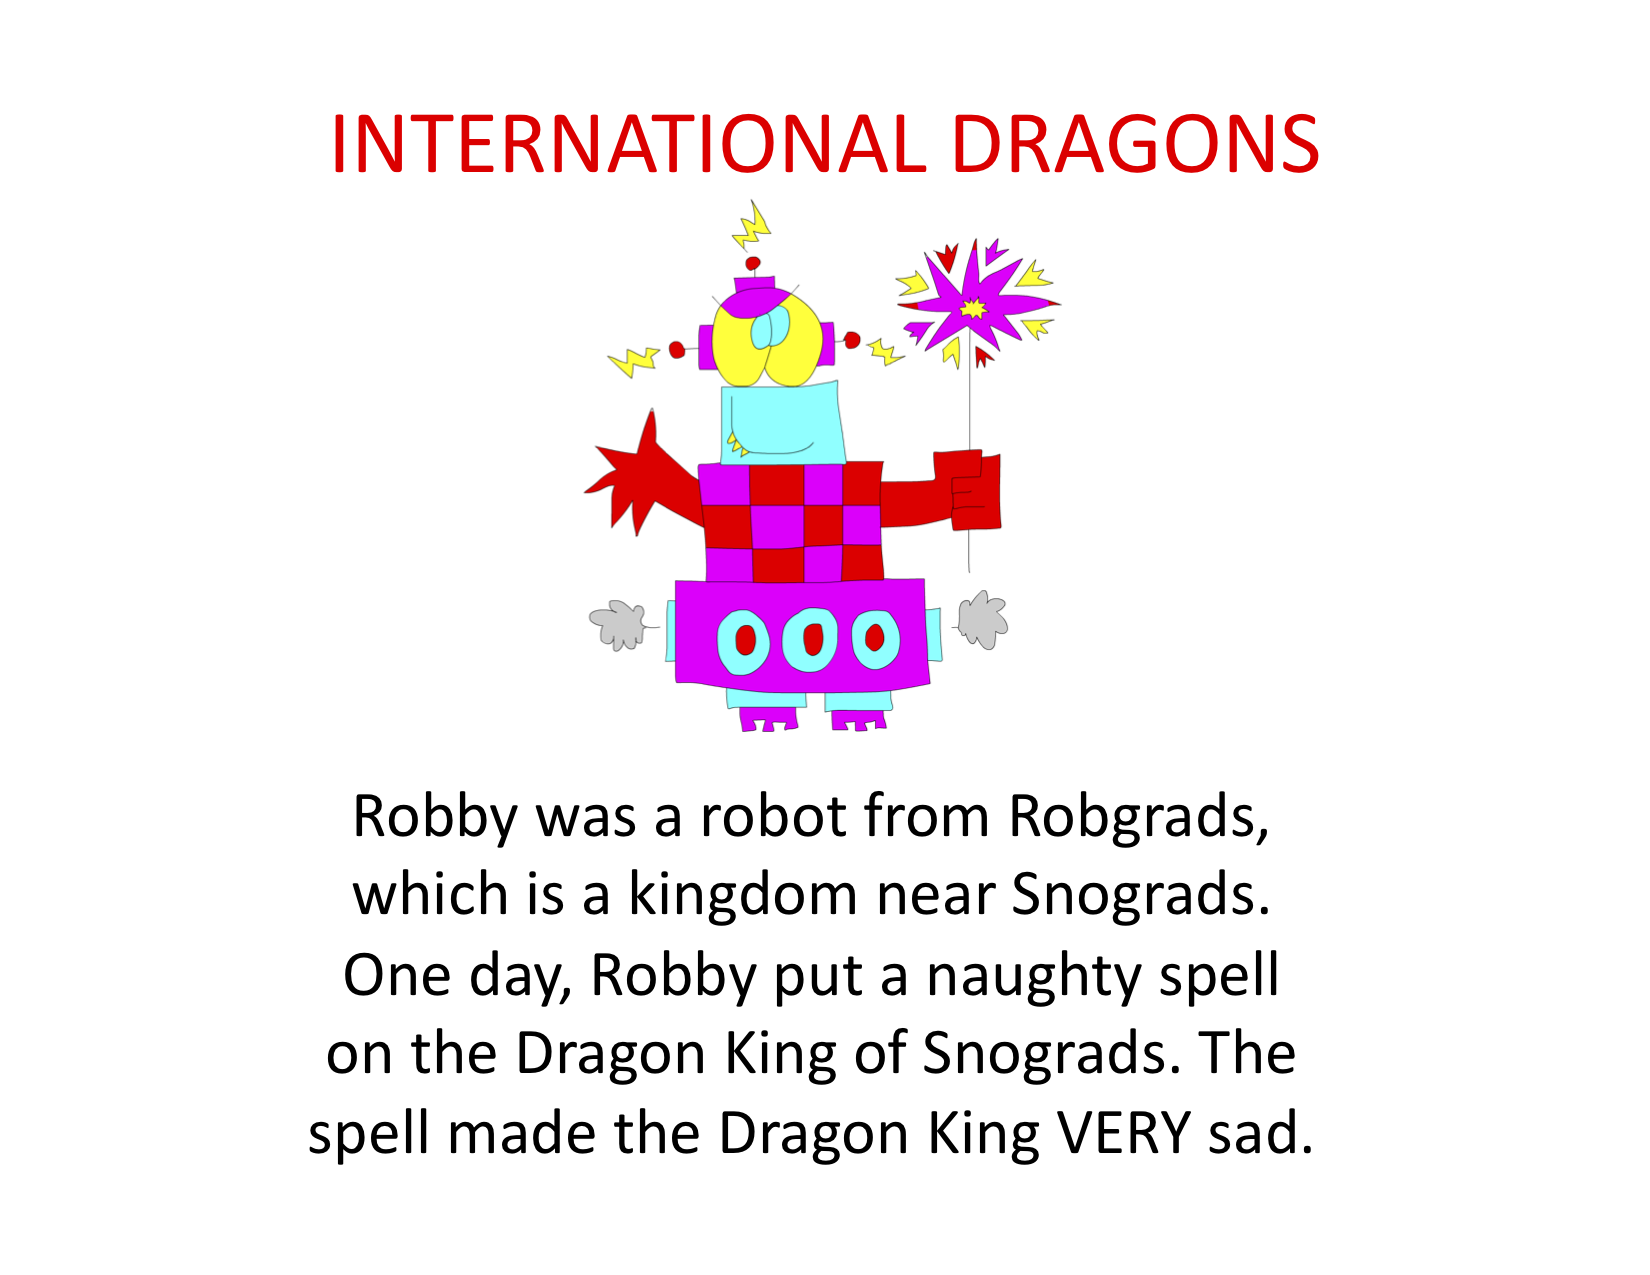 International Dragons (dragged)